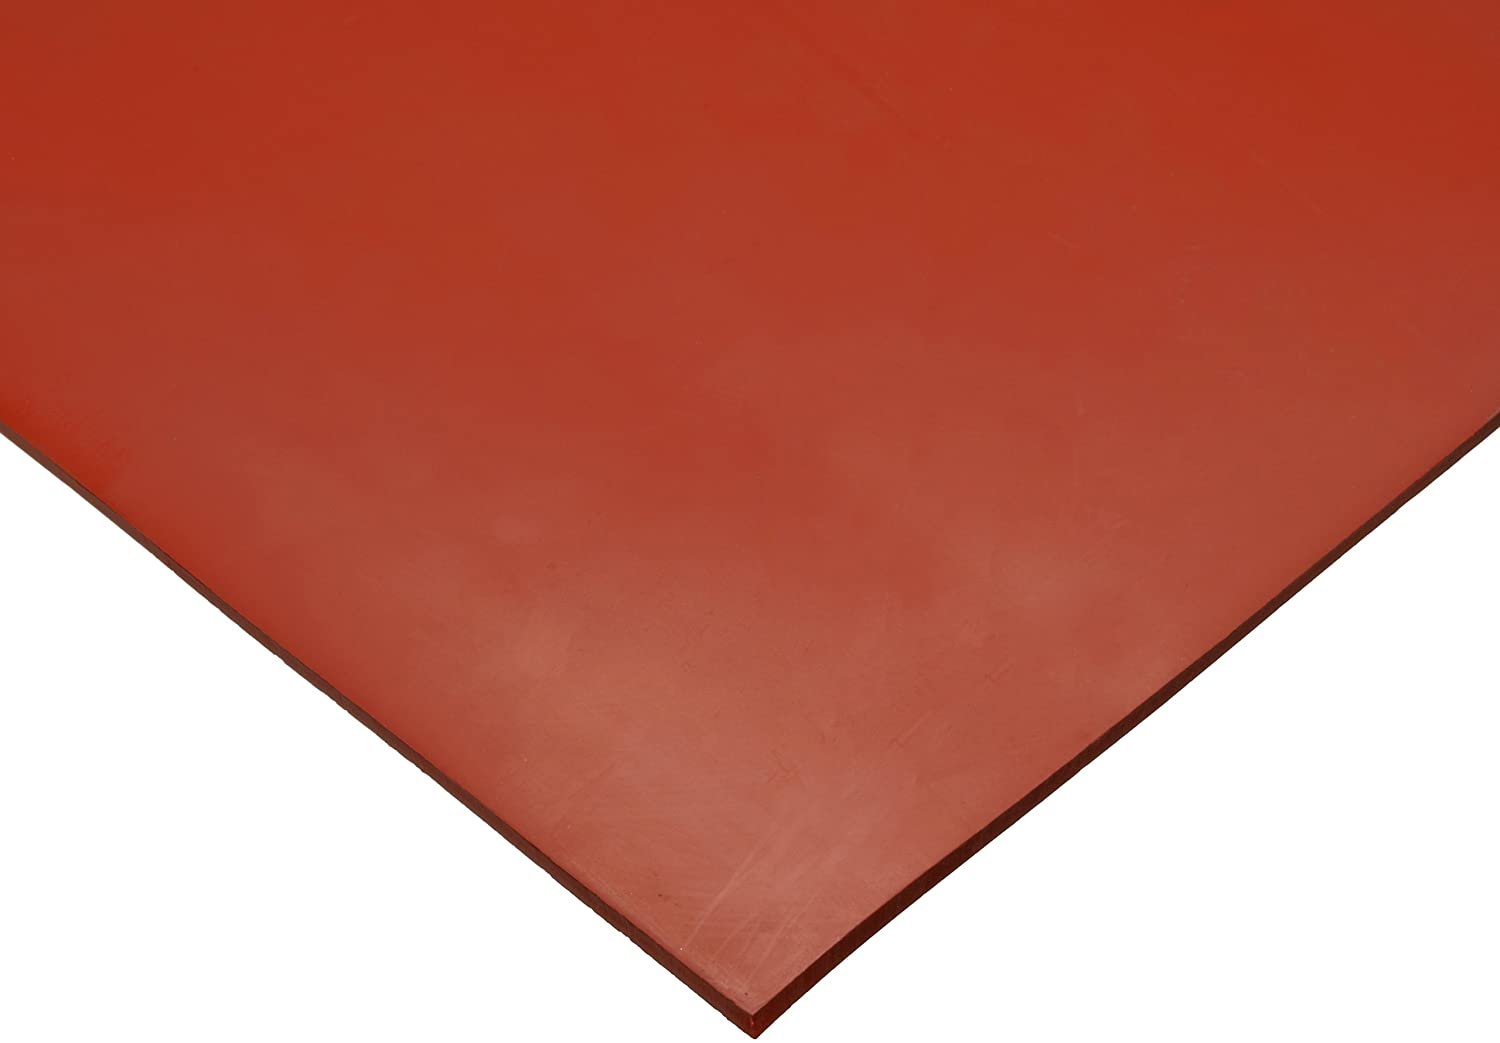 75 Shore A Sheet 24 Length Smooth Finish 12 Width No Backing 1//16 Thickness Styrene Butadiene Rubber SBR Red